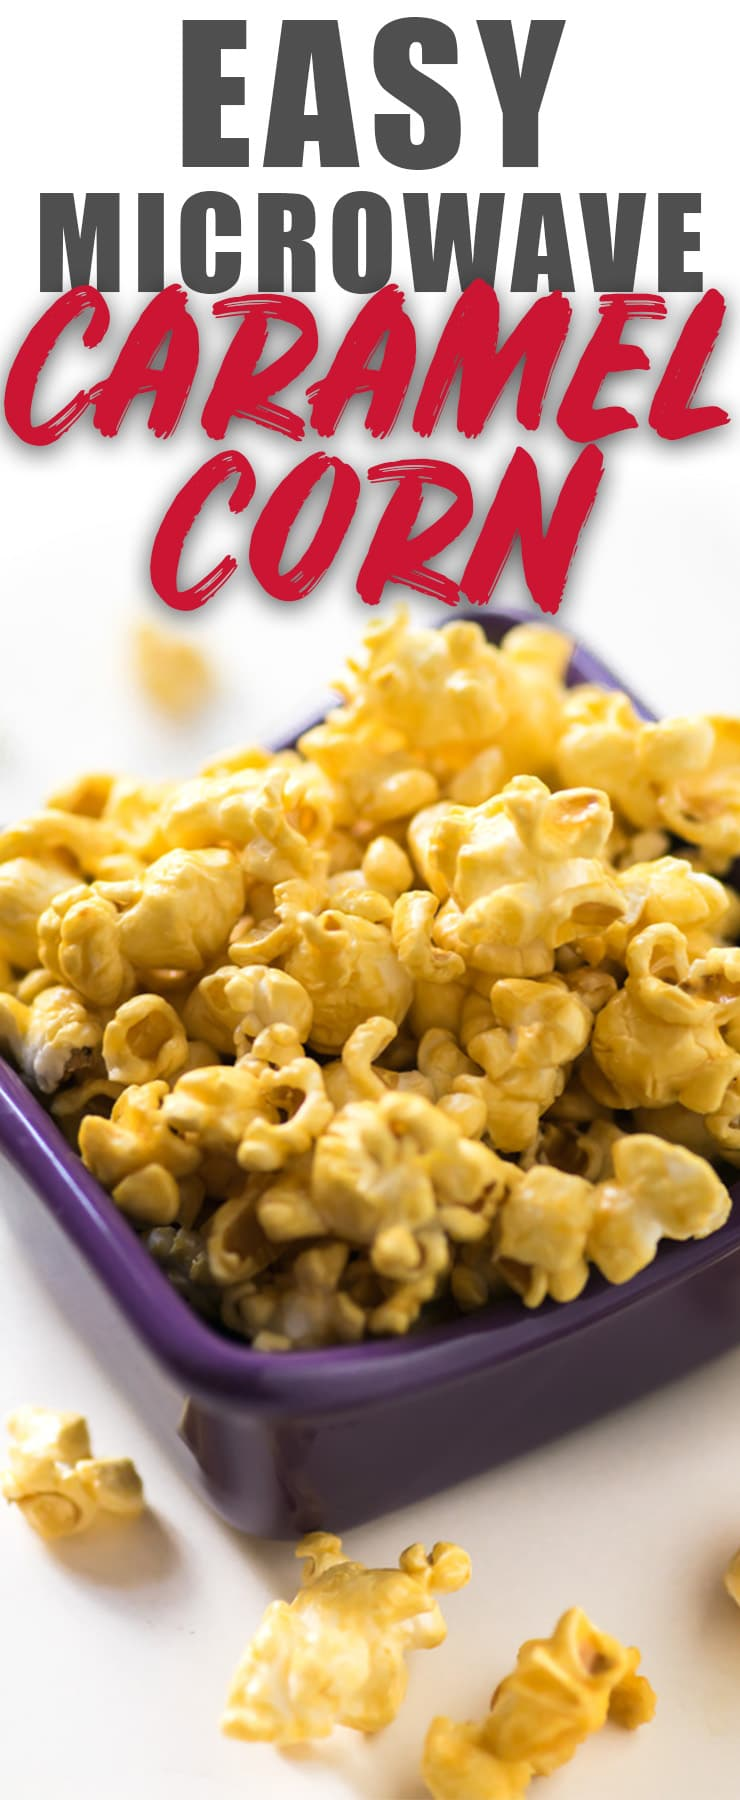 Caramel Popcorn in the Microwave?!? YES! This easy recipe uses brown sugar and a fun technique that involves lots of dancing around the kitchen. My kids love to help! A perfect Christmas gift! #popcorn #gift #caramel